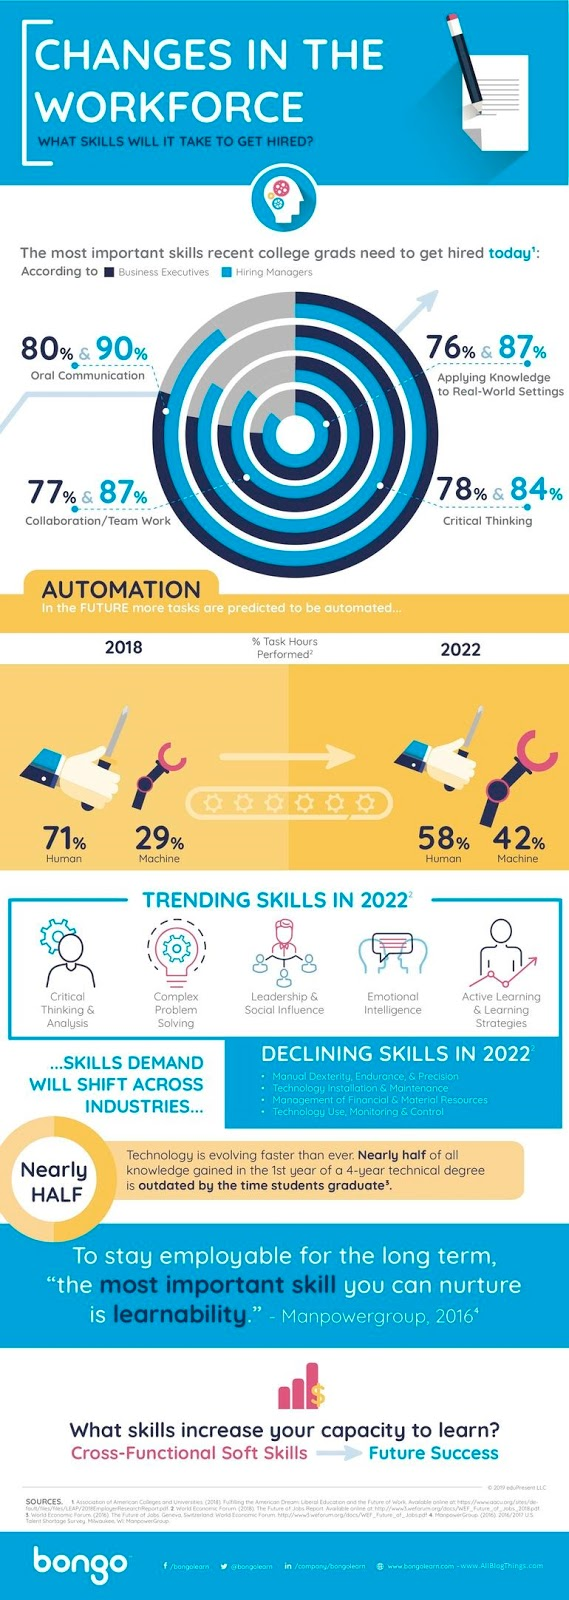 What Skills Will It Take To Get Hired? (infographic)